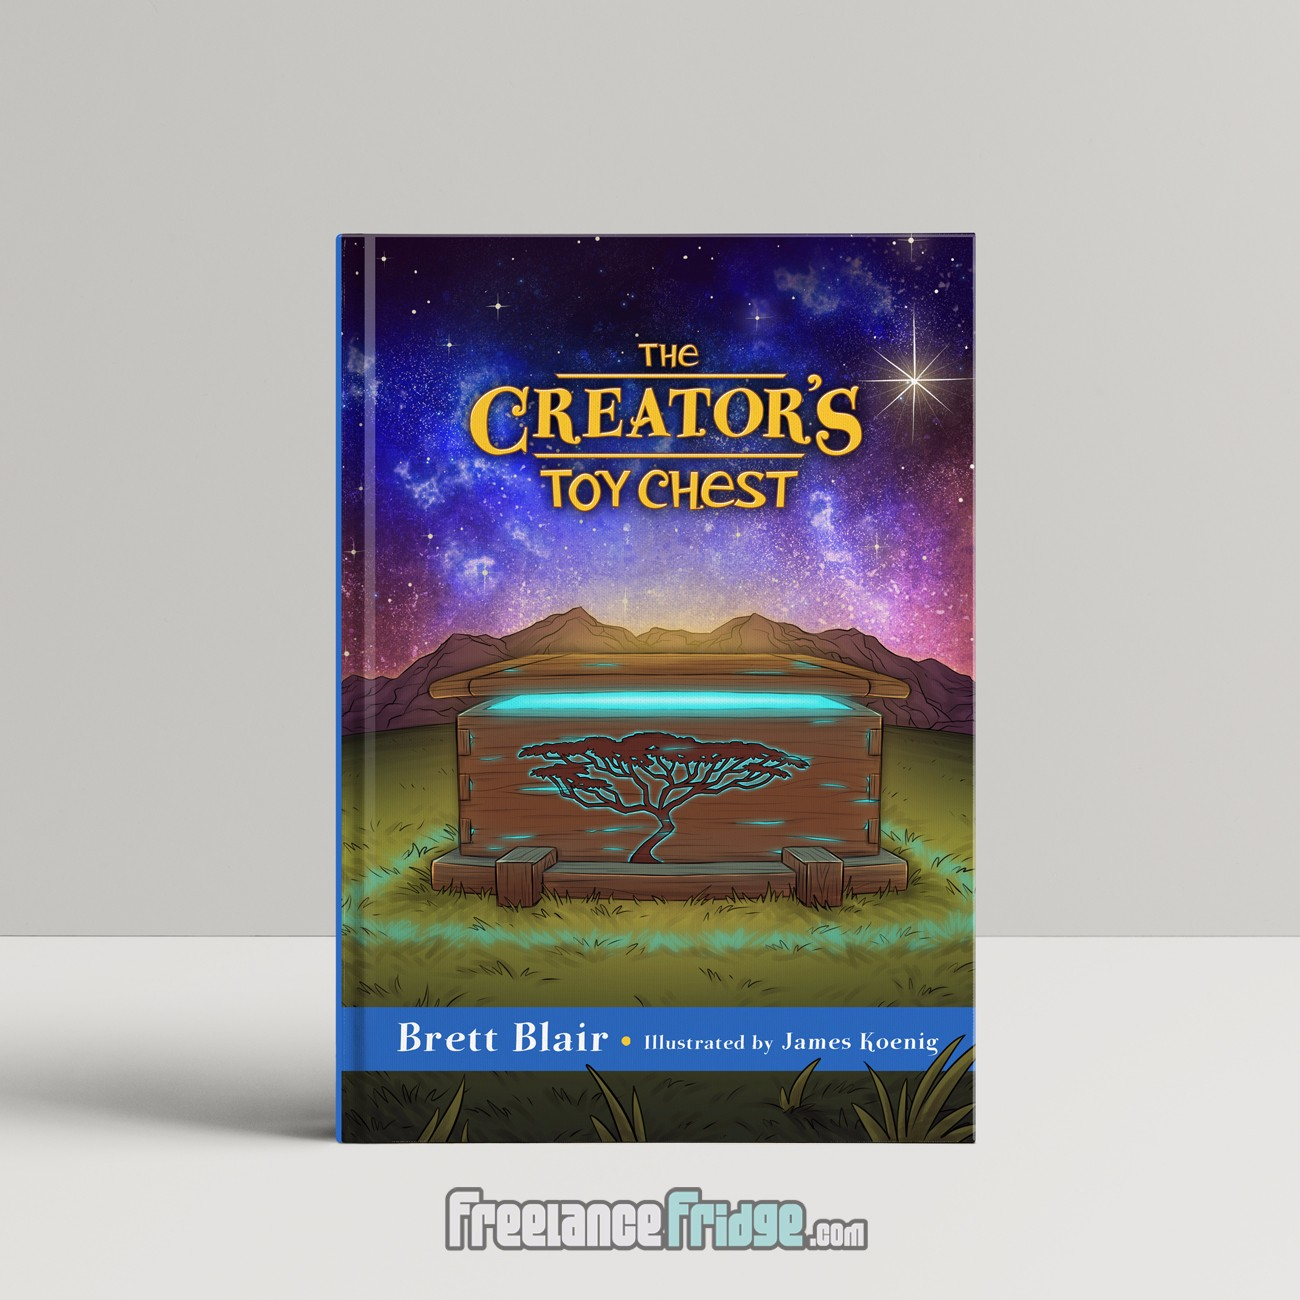 Creator's Toy Chest God's Creation Story Christian Children's Book Cover Illustration standing up